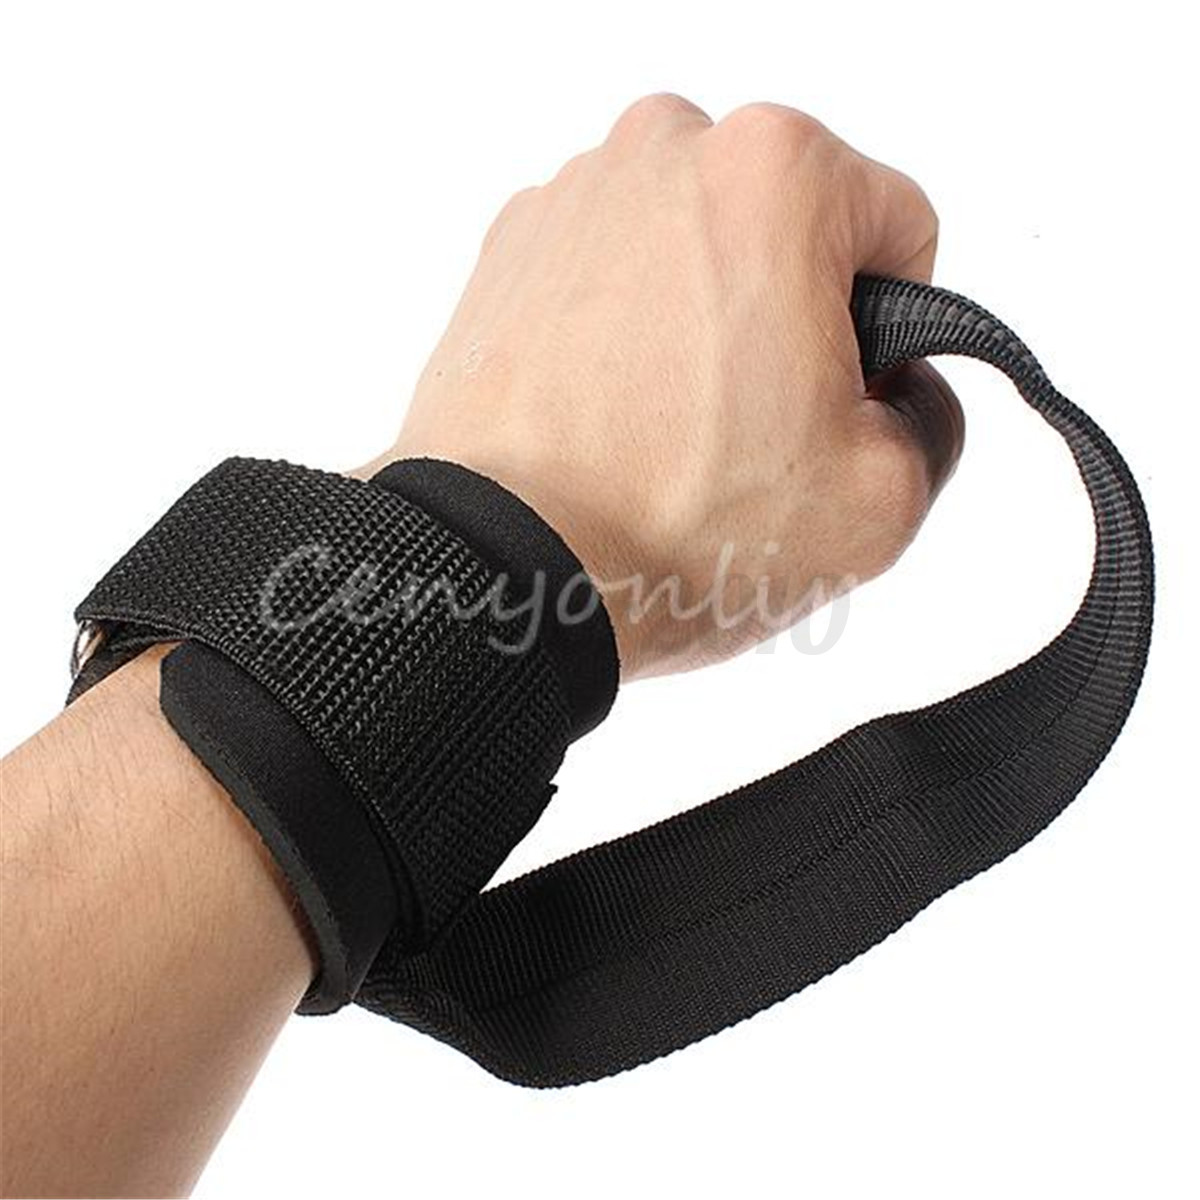 1 Pair Weight Lifting Hand Bar Grips Straps Wrist Support: 1 Pair Gym Training Weight Lifting Bar Straps Wrap Hand